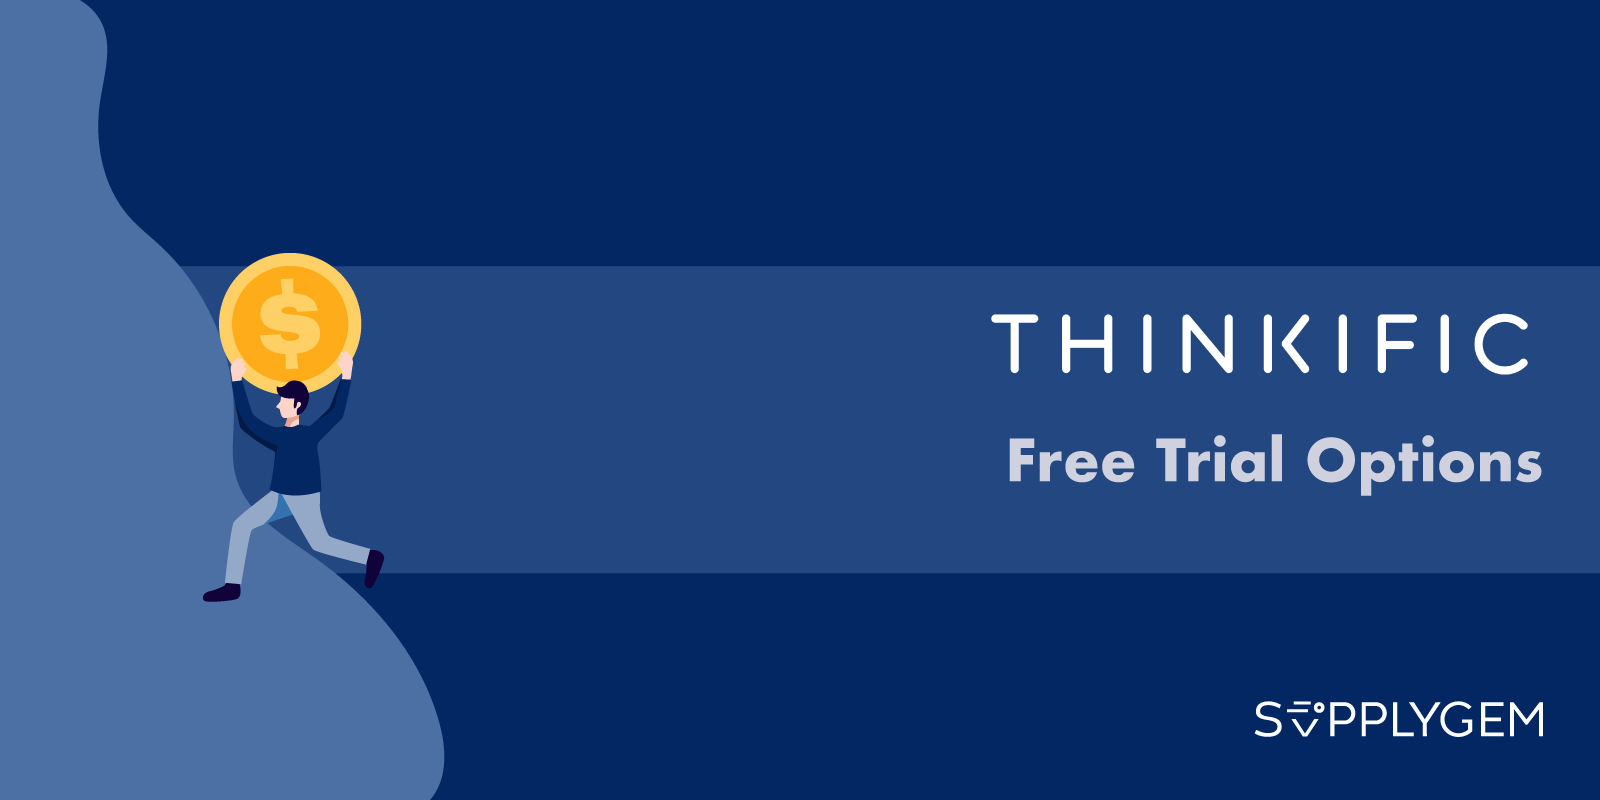 Thinkific Free Trial